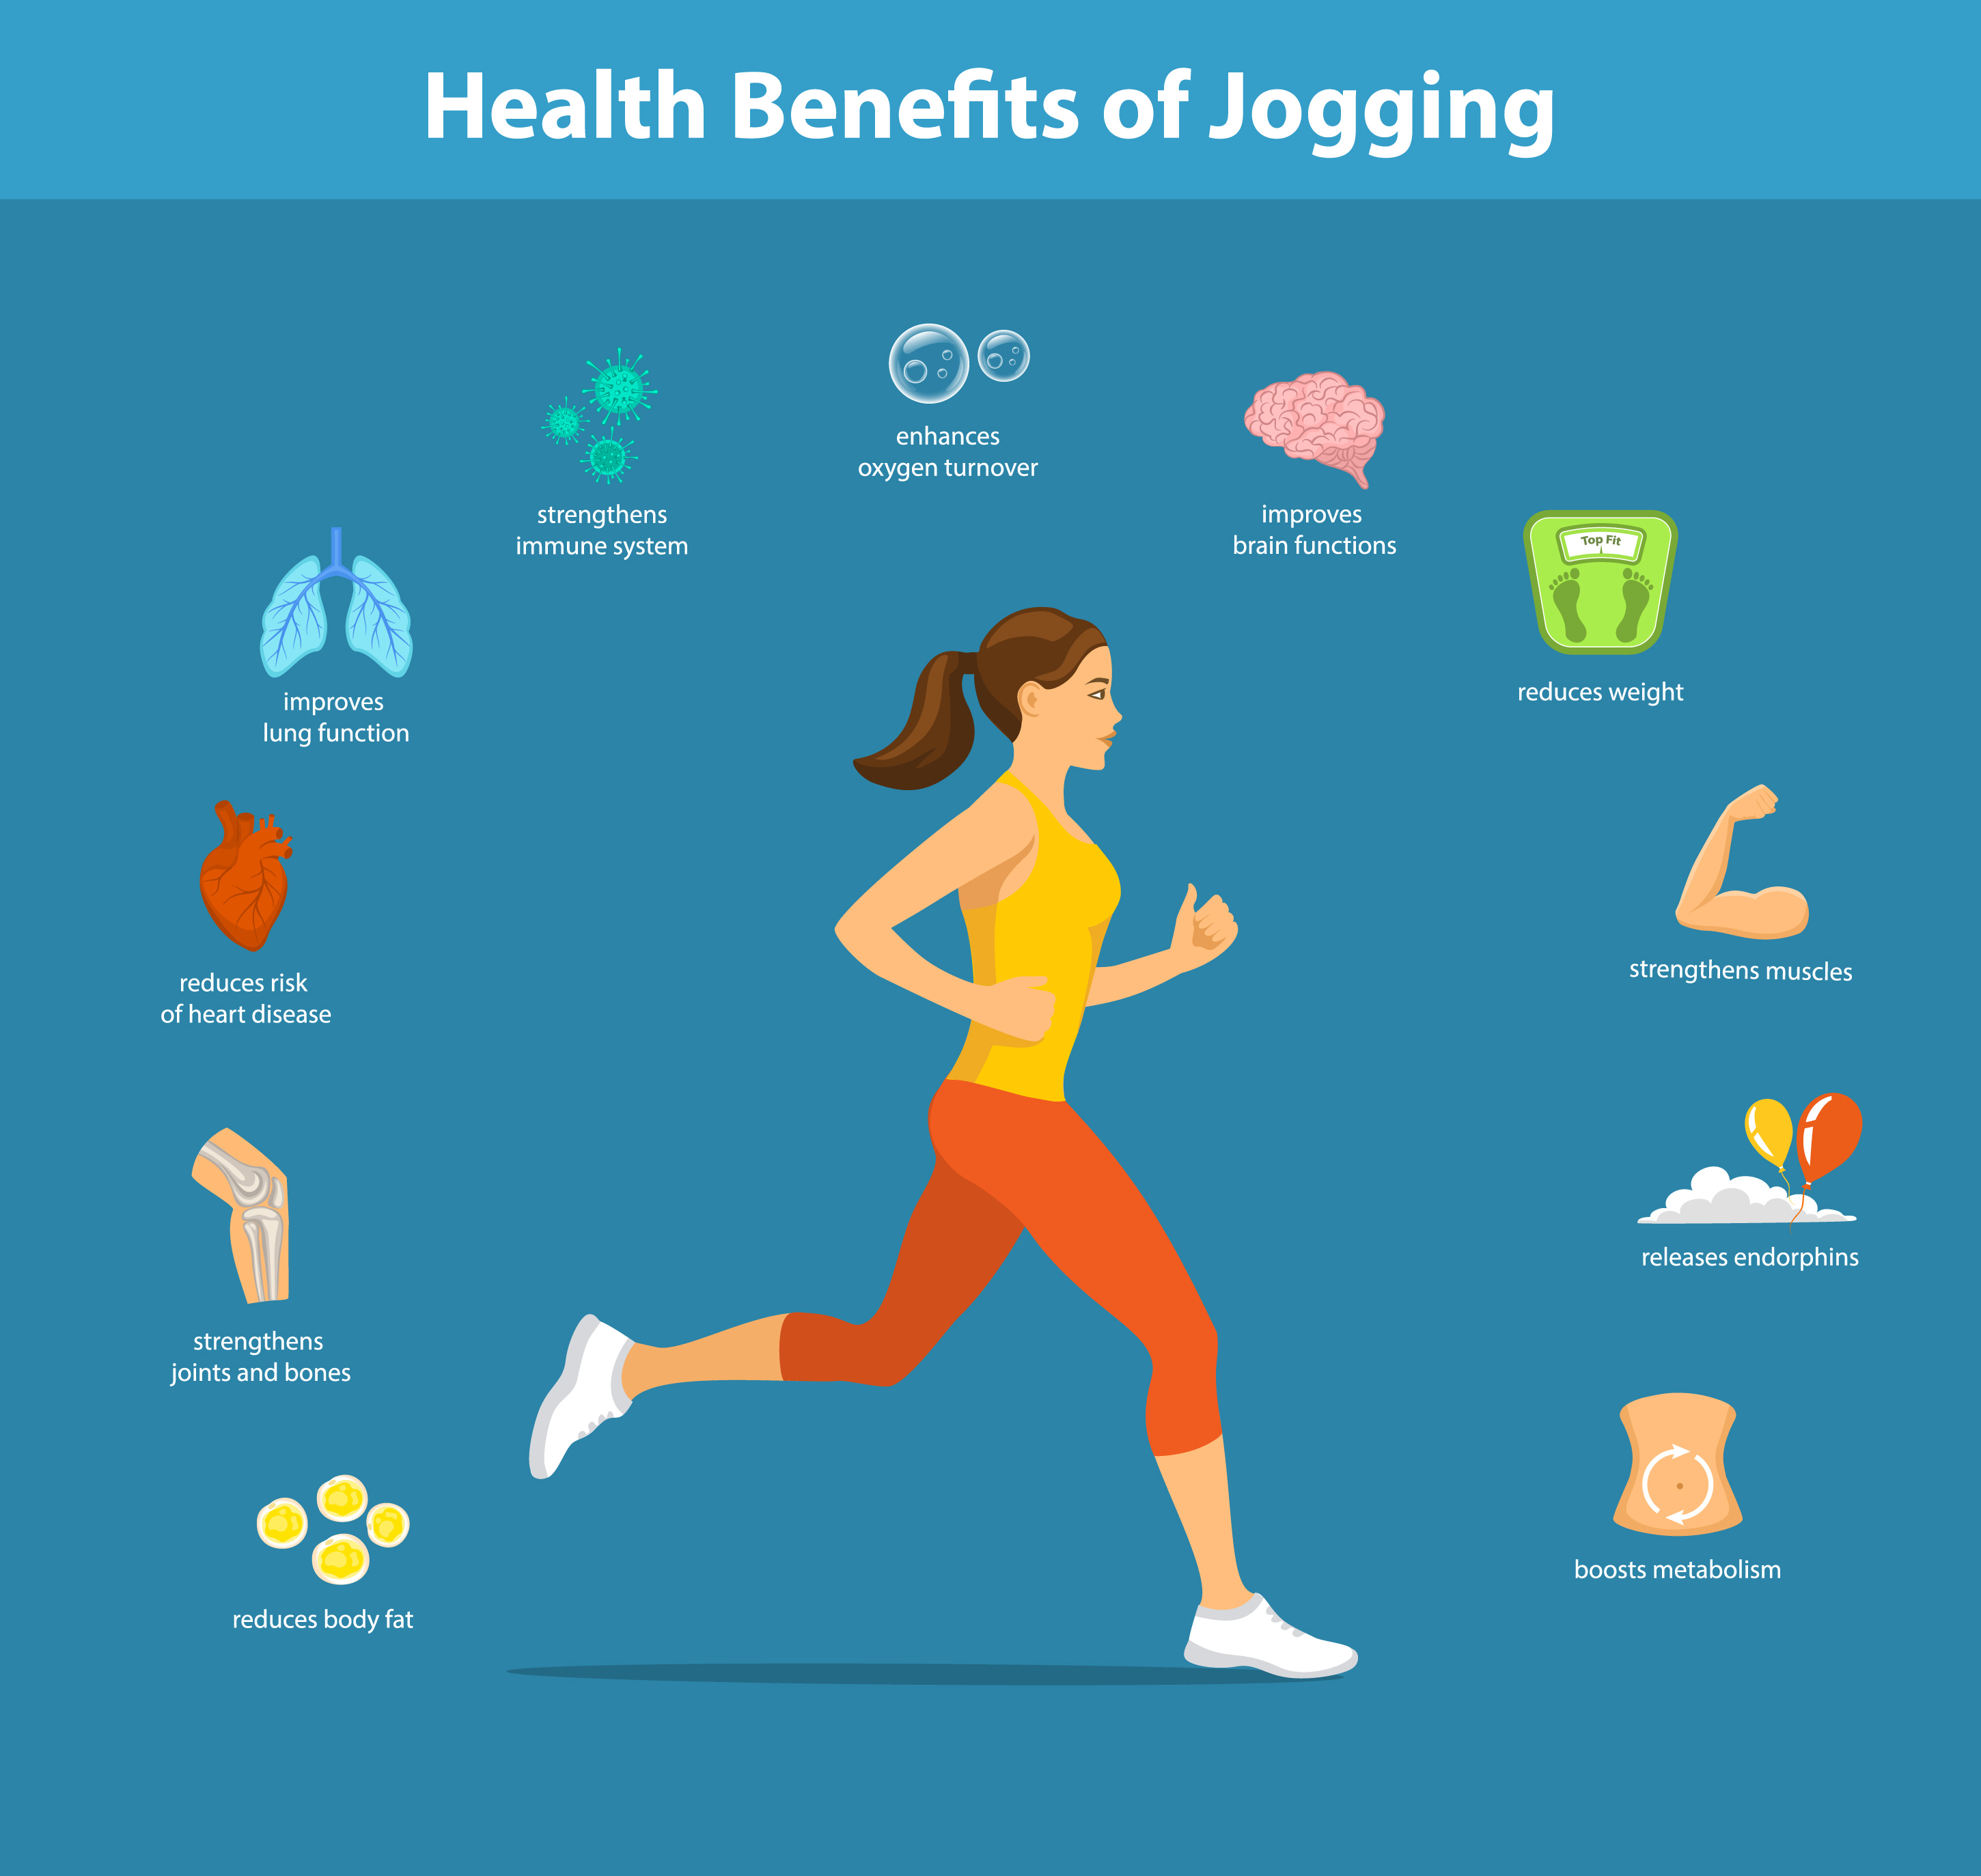 Remember that cardio is not only an unpleasant necessity. It brings a lot of health benefits!